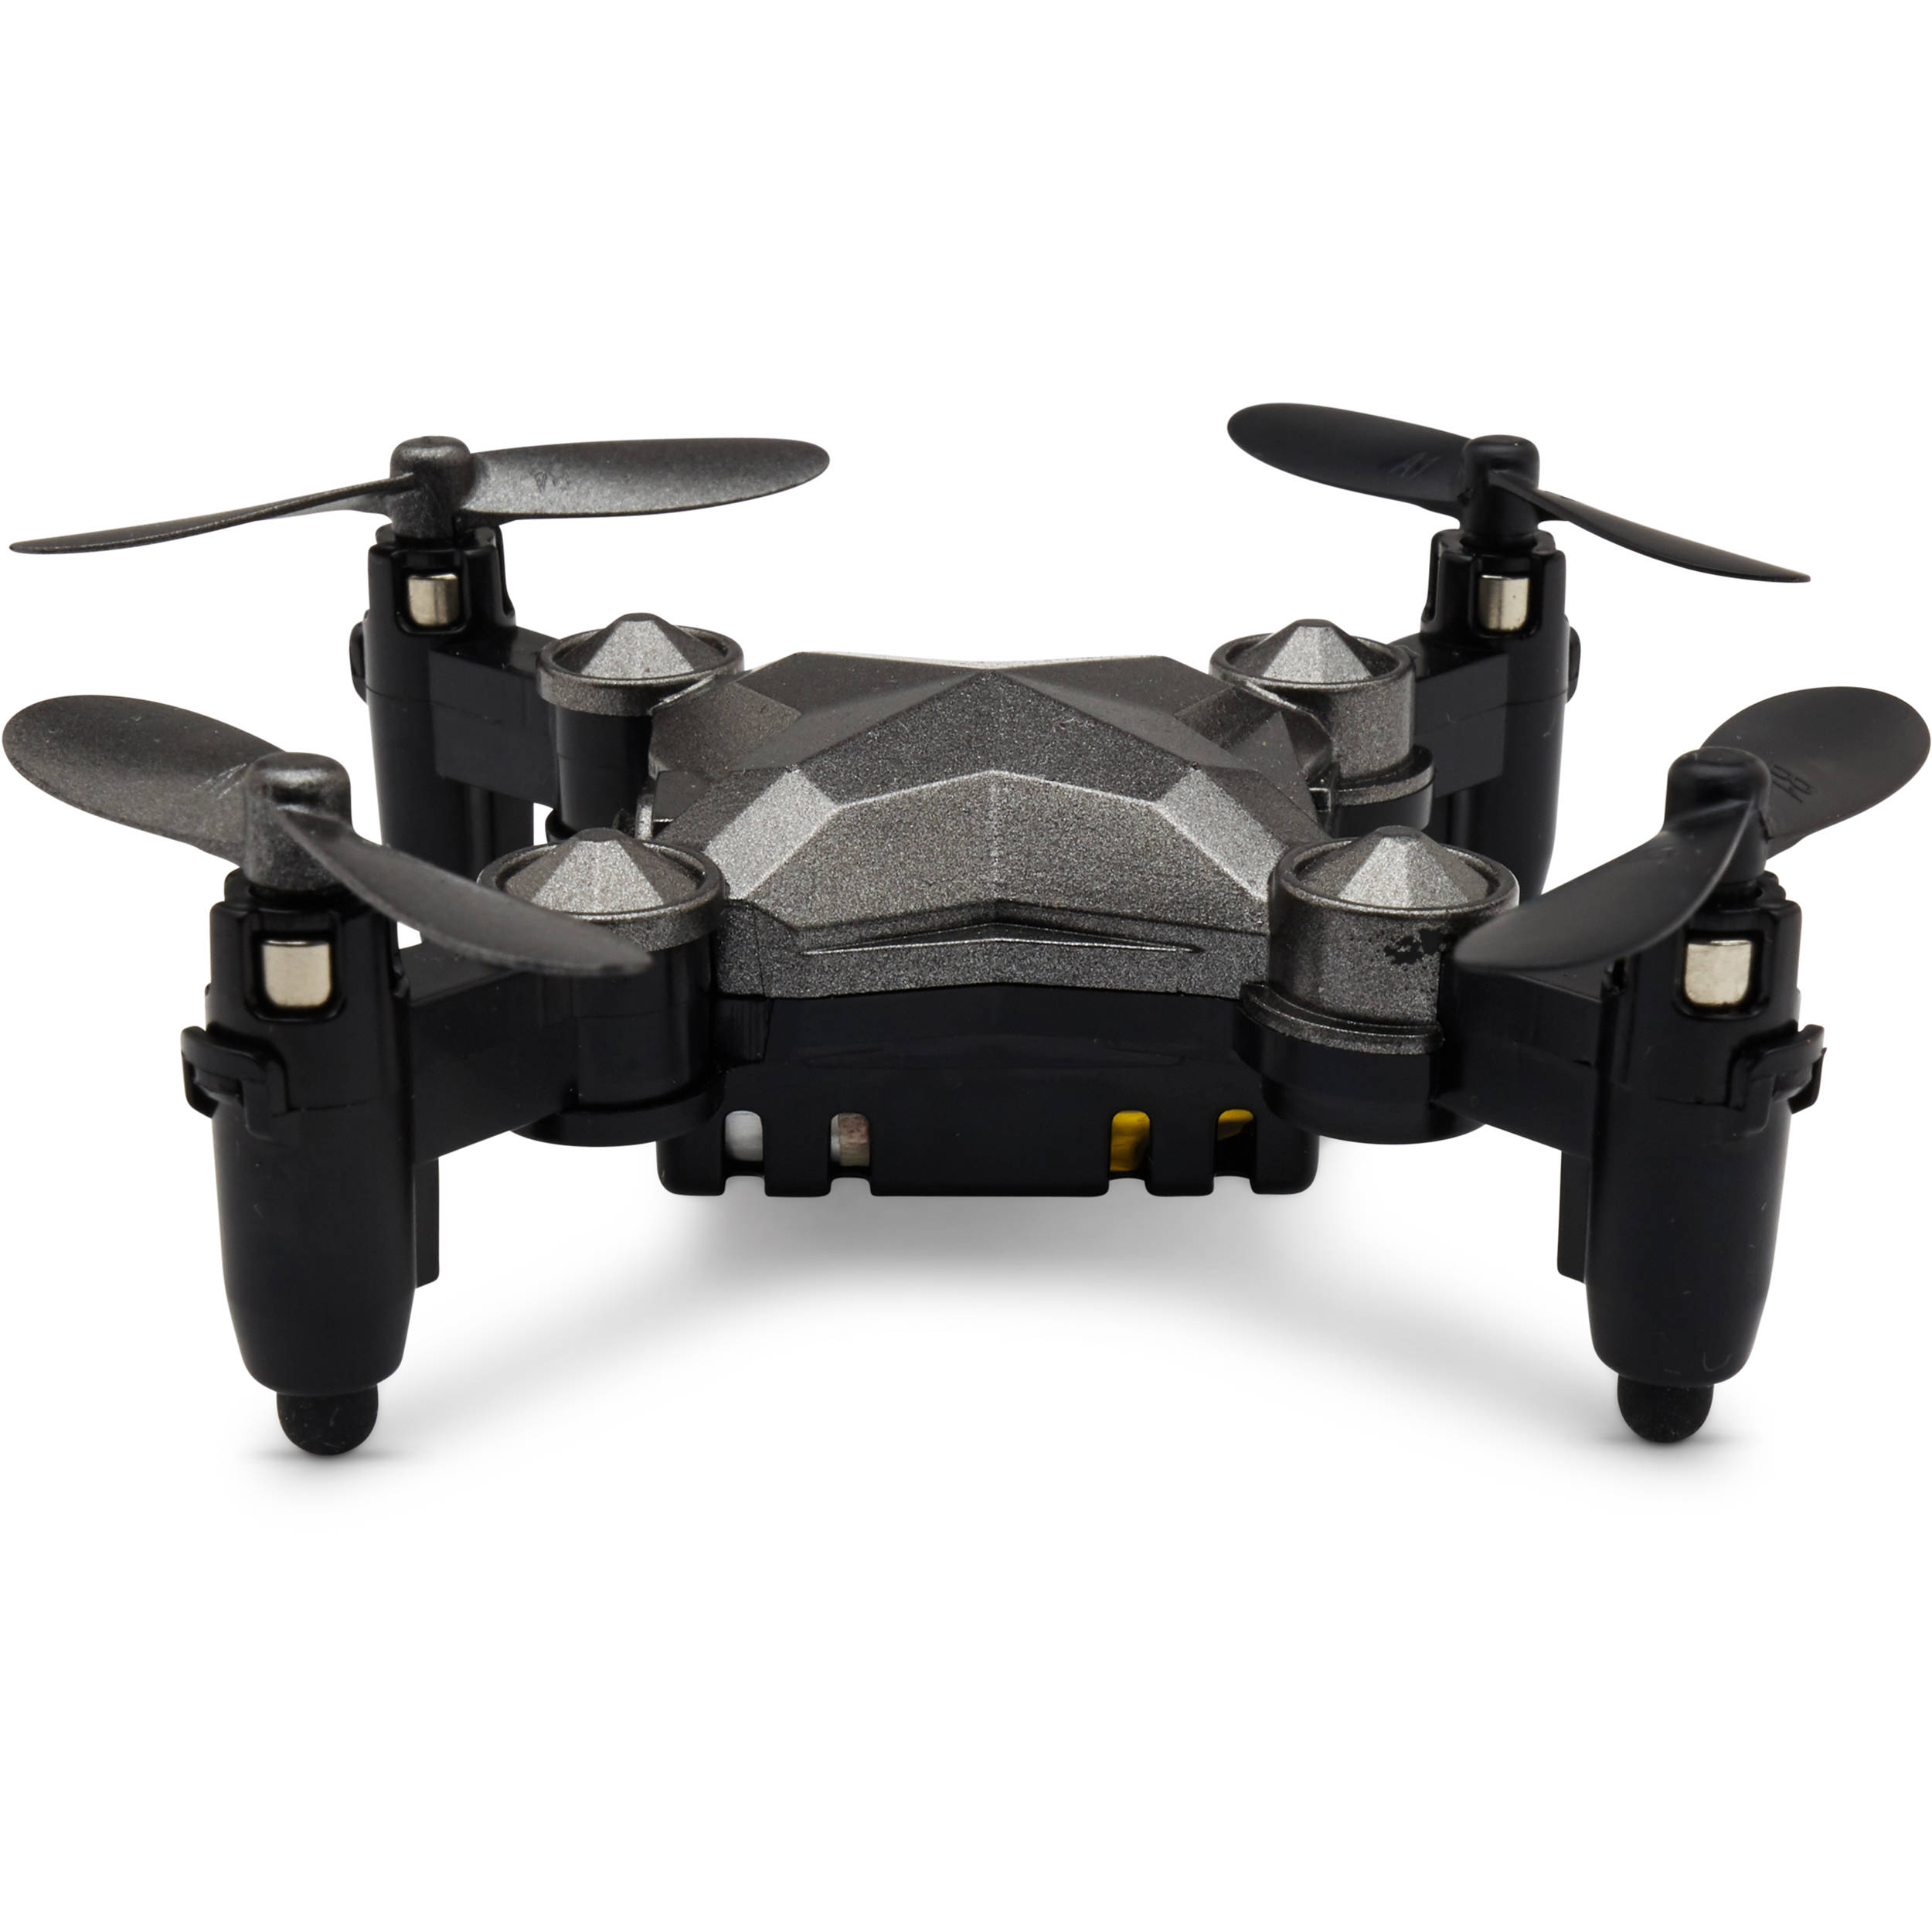 Top race foldable quadcopter mini drone with wrist watch trmq9rhbhphotovideo, quadcopter design top race foldable quadcopter mini drone with wrist watch design transmitterstb&h